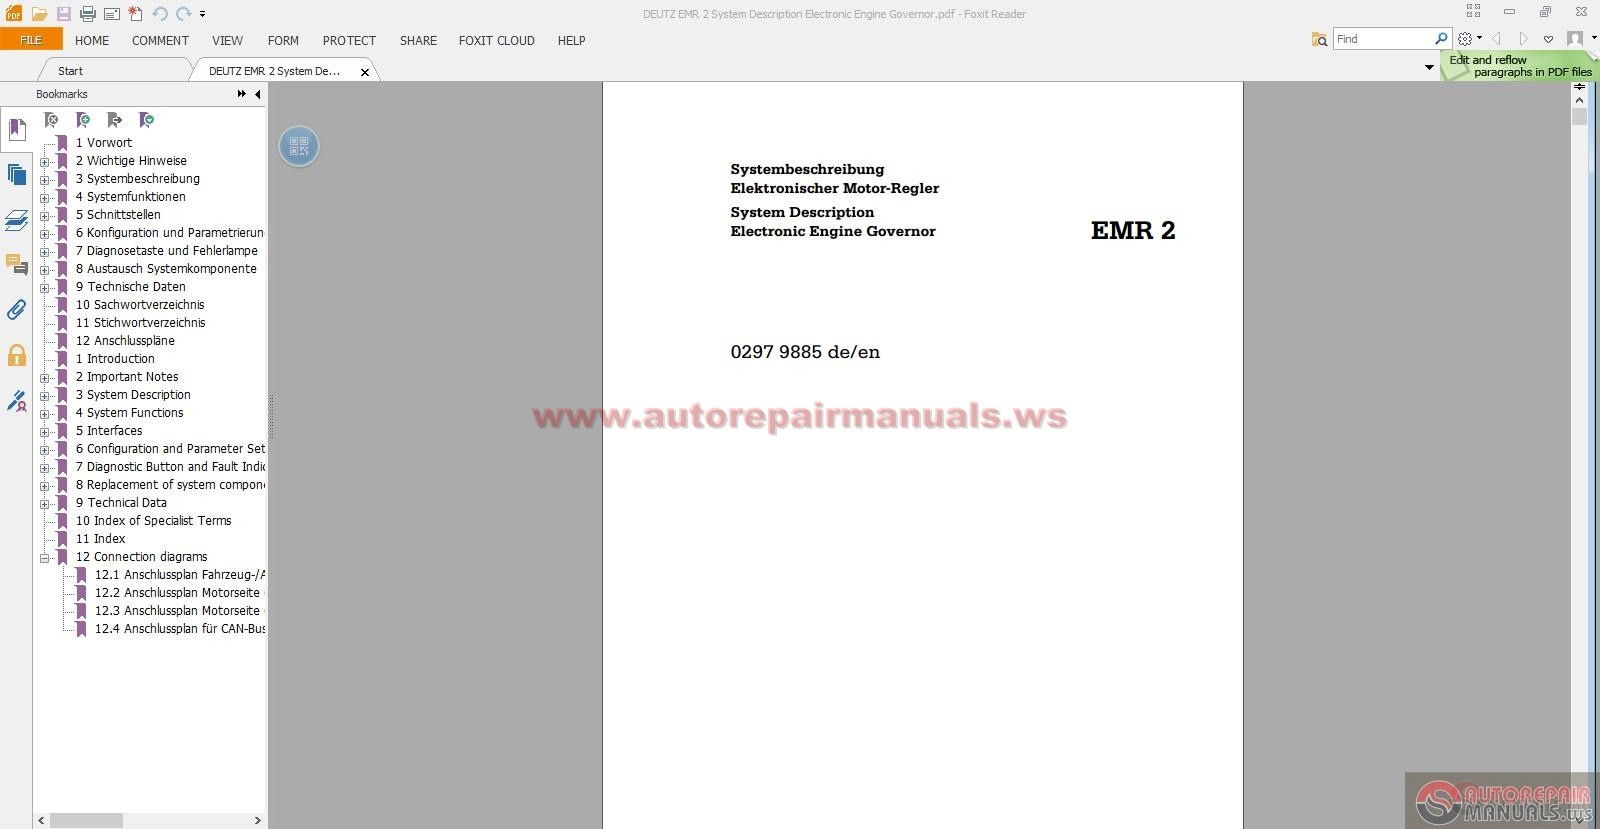 Deutz emr 2 system description electronic engine governor auto deutz emr 2 system description electronic engine governor size 18mb language english type pdf pages 118 sciox Choice Image